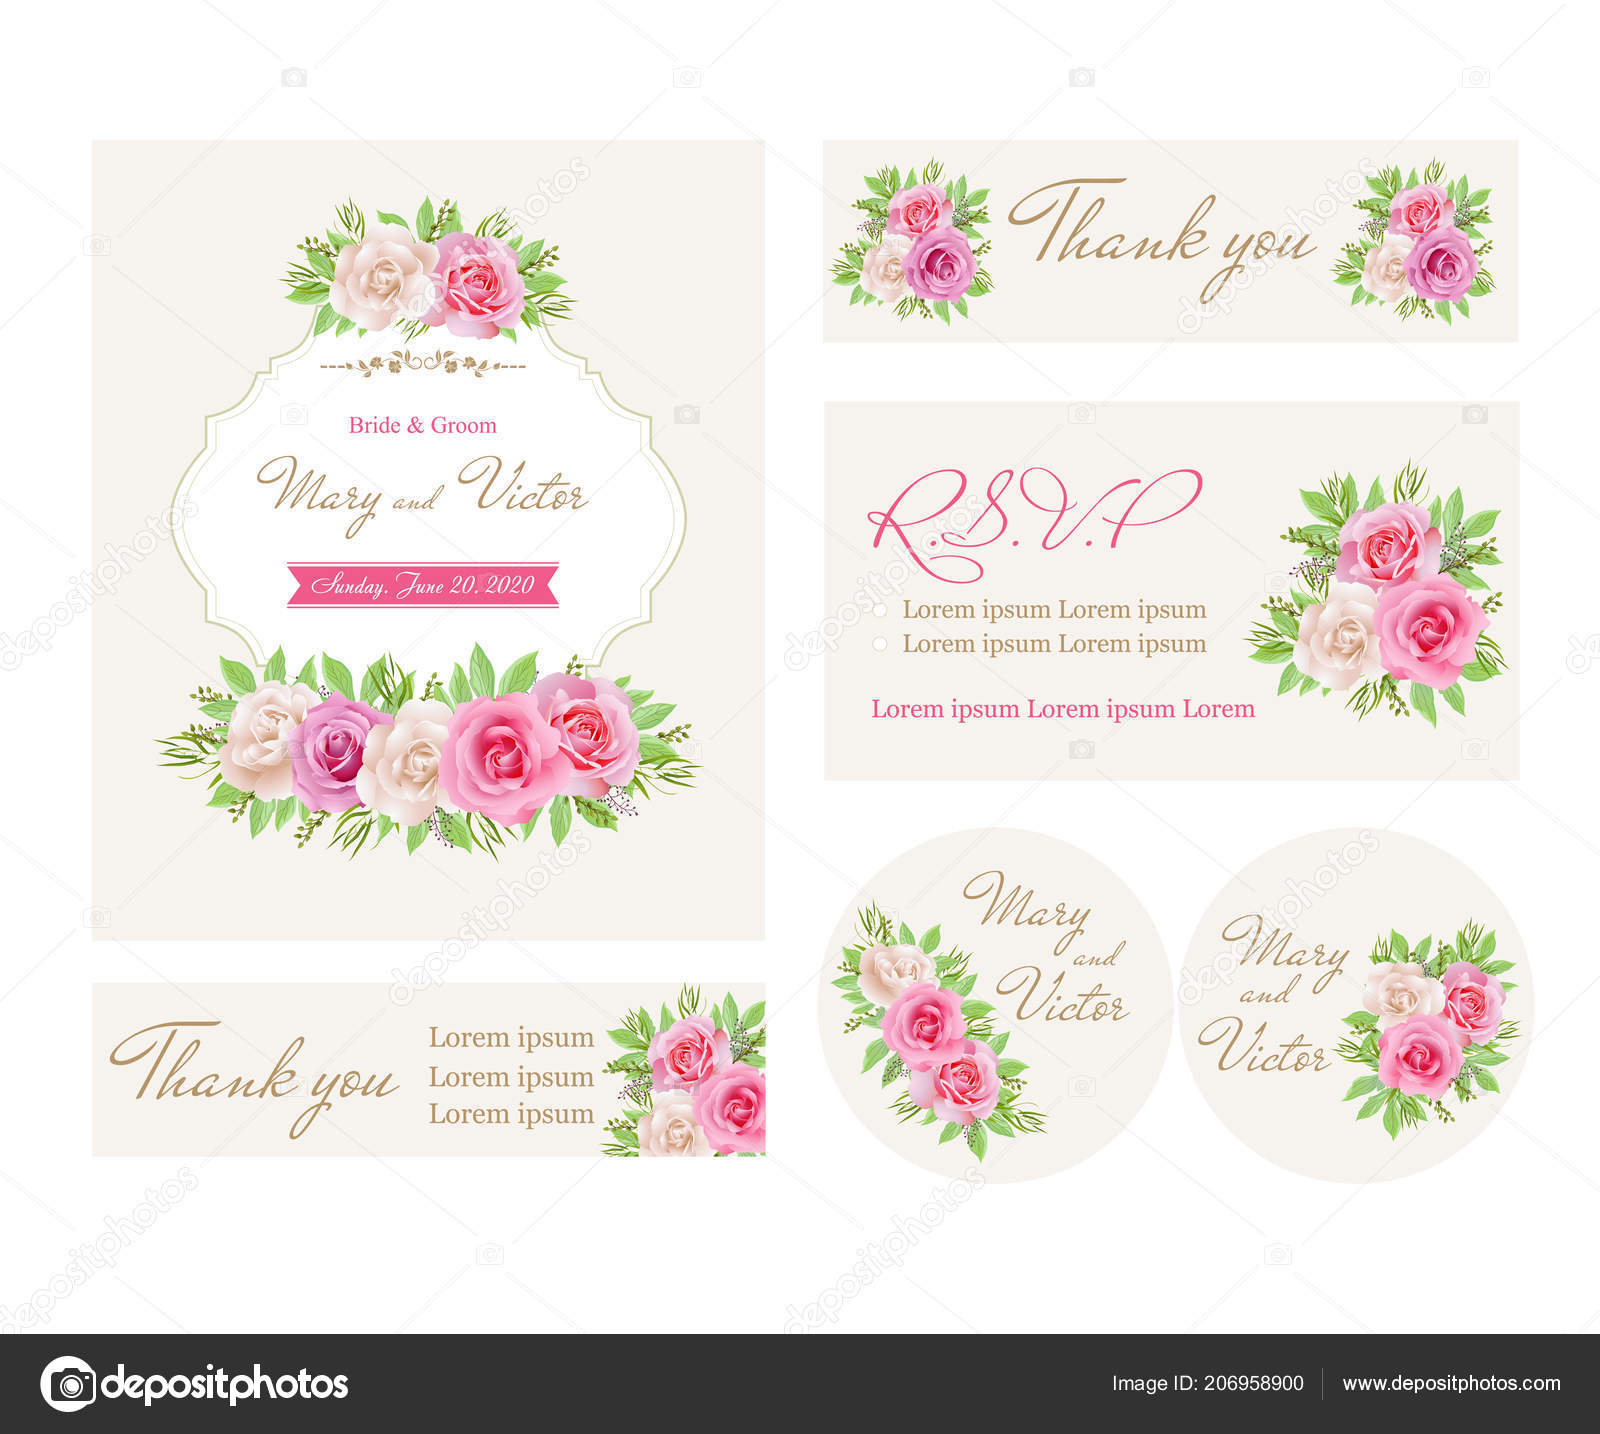 Cartes Invitation Mariage Avec Des Roses Roses Blanches